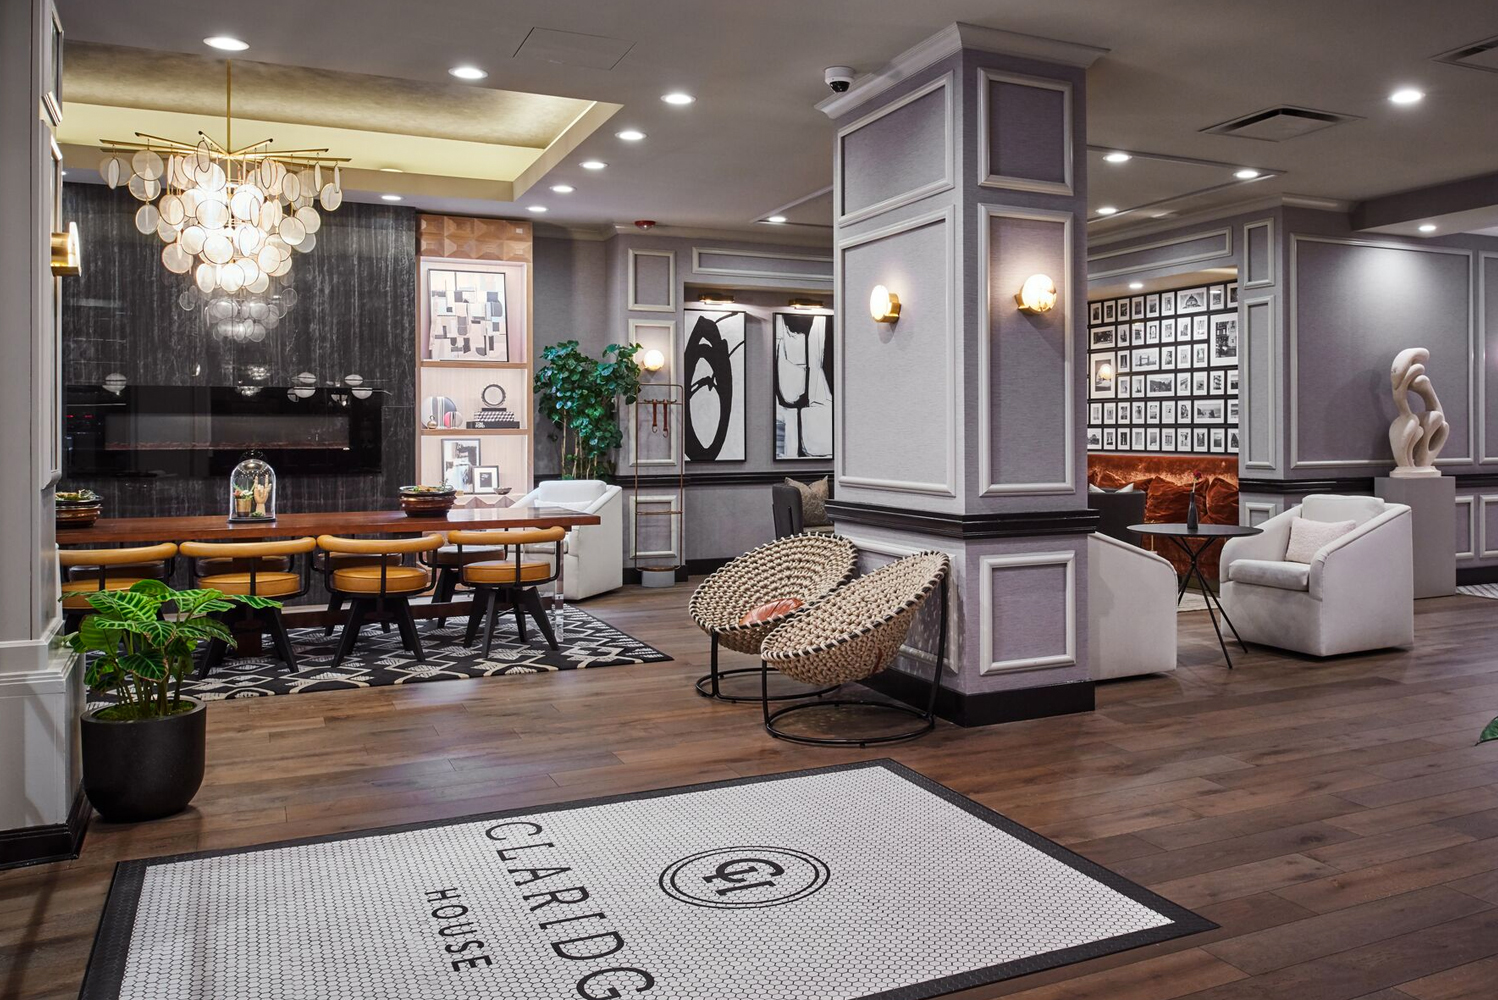 Claridge House Chicago completed a renovation led by hospitality design and development firm The Gettys Group.